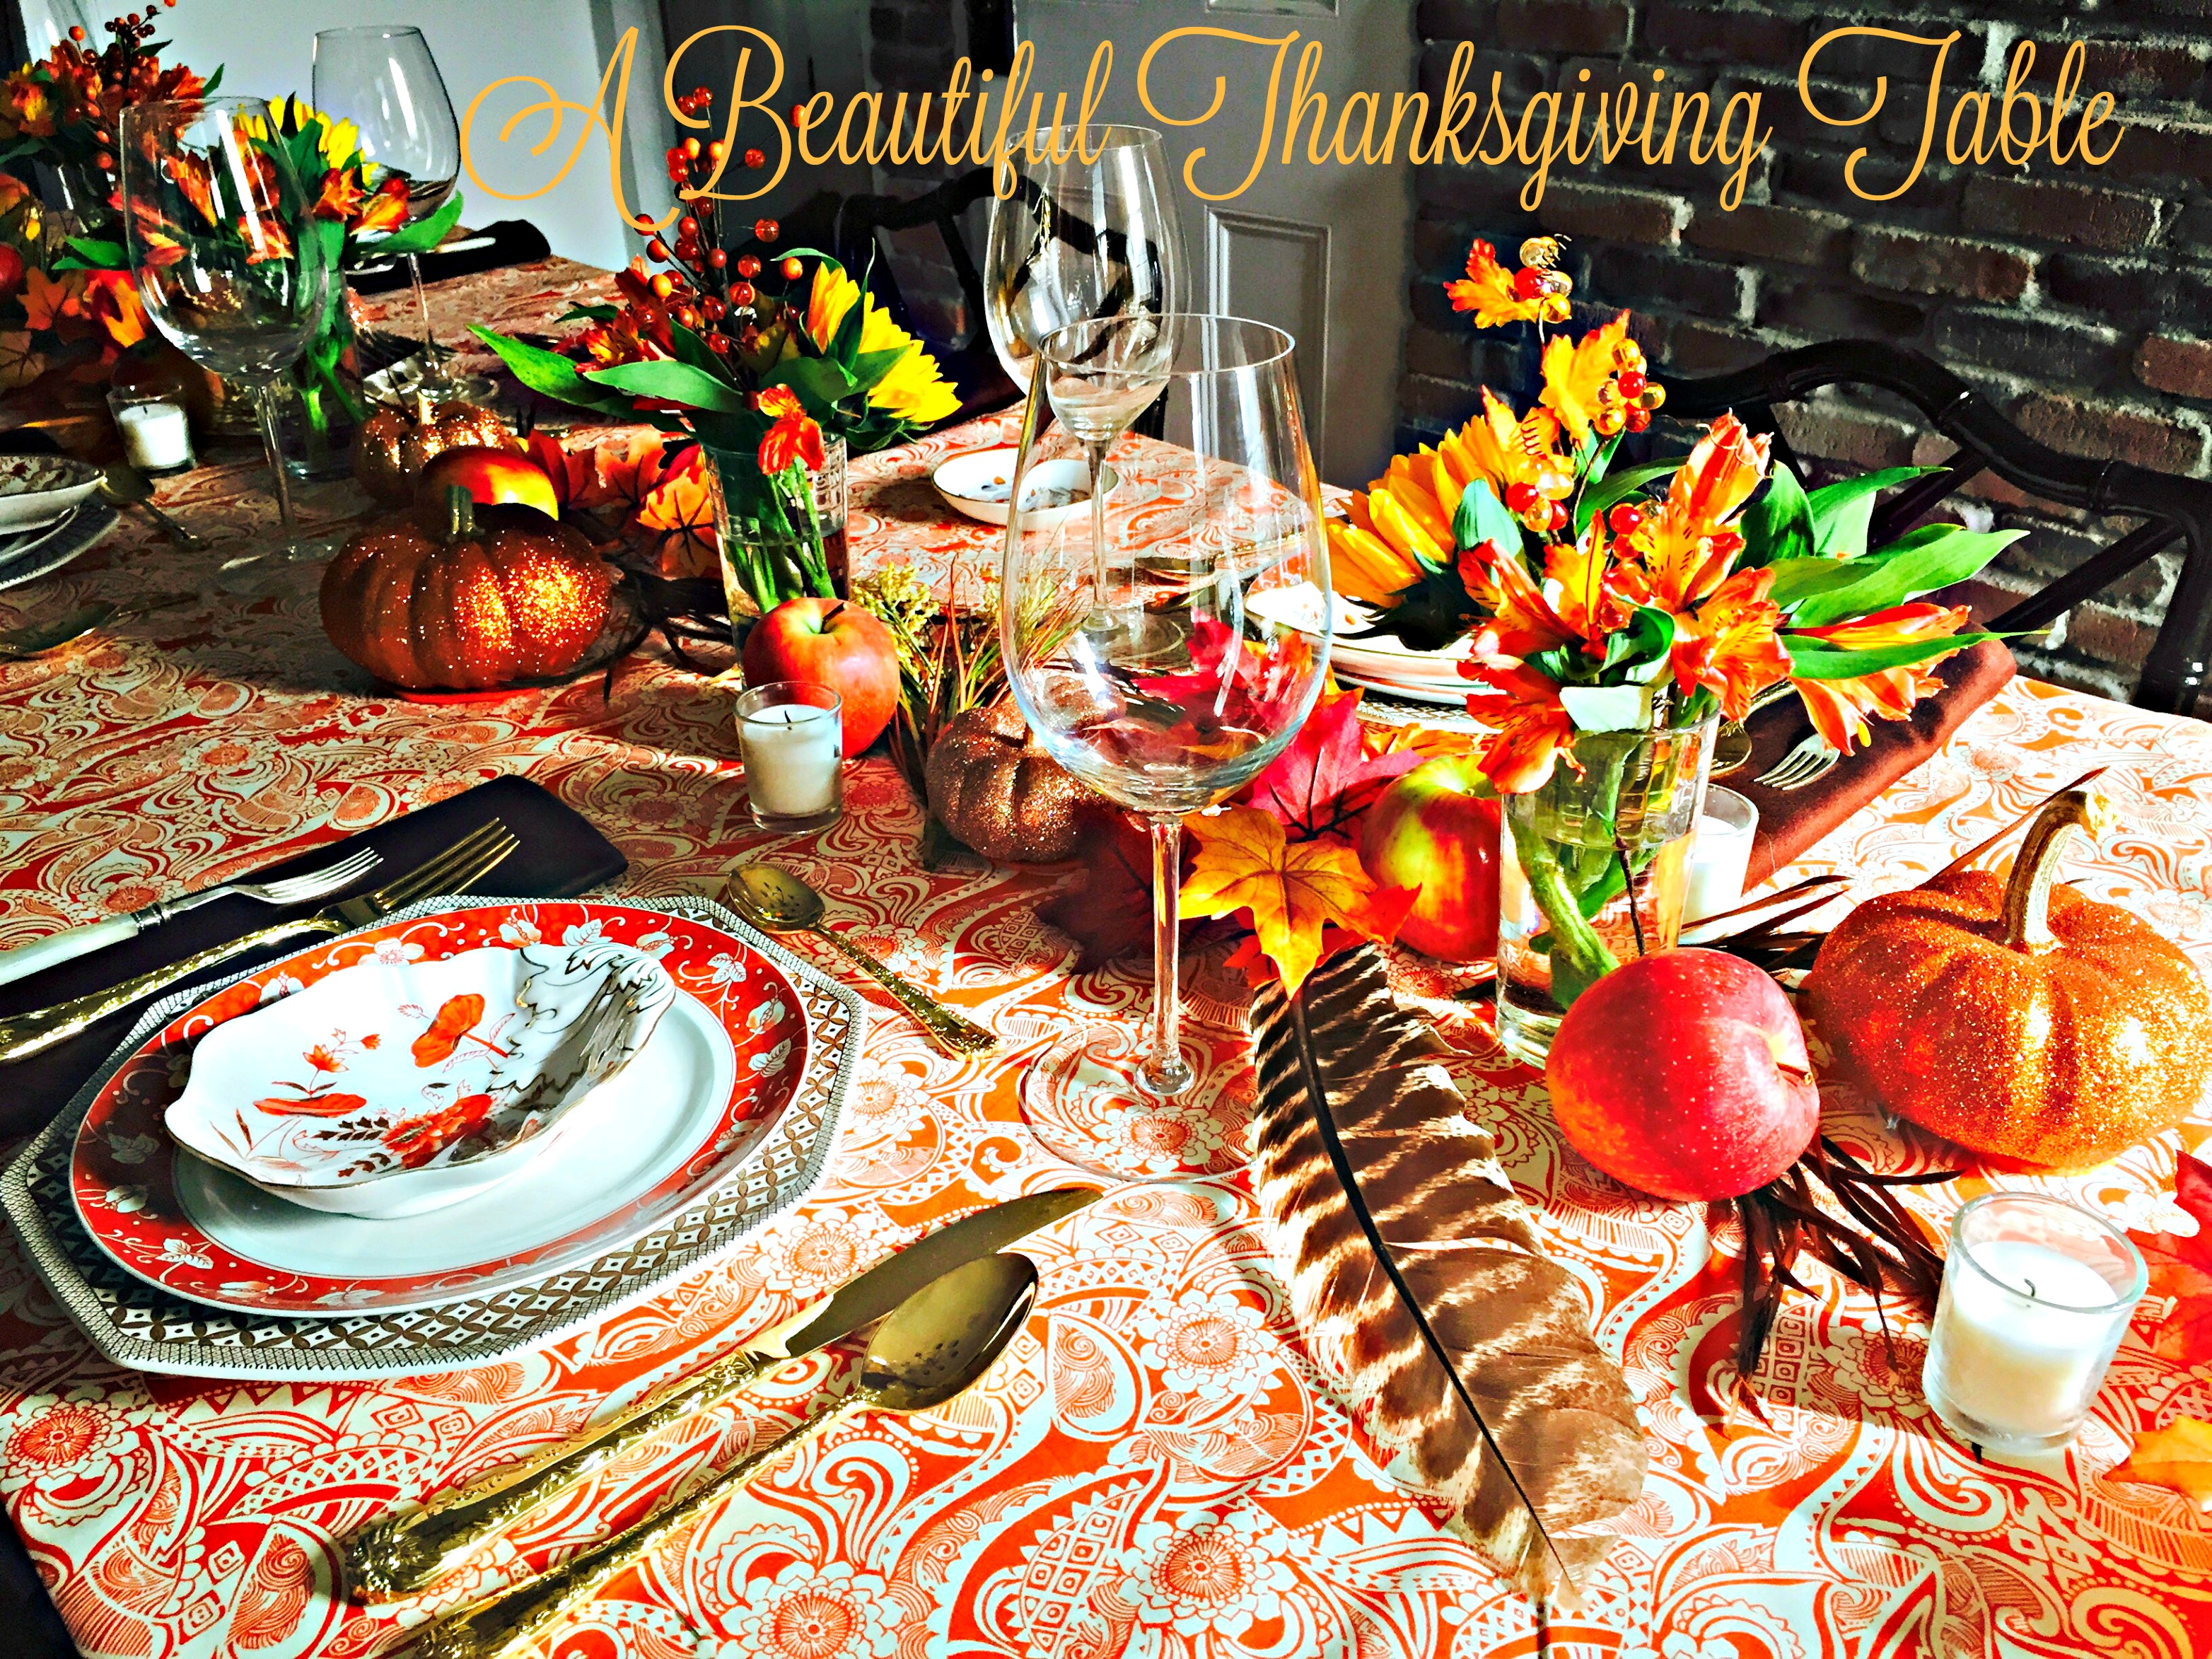 A Beautiful Thanksgiving table